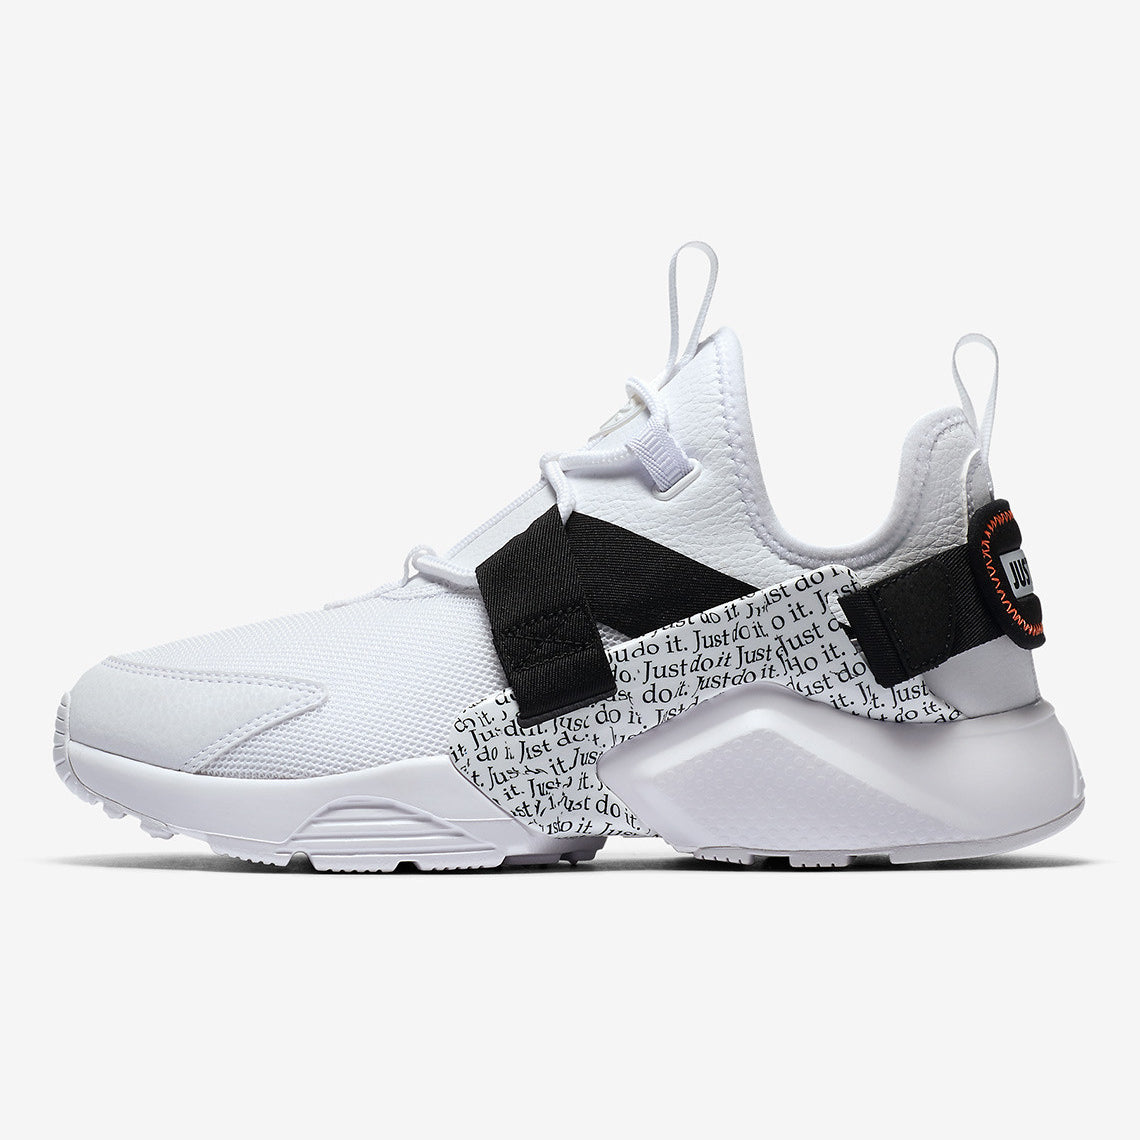 Nike Wmns AIR HUARACHE CITY LOW PRM Just Do It Pack WHITE/WHITE,BLACK,TOTAL  ORANGE